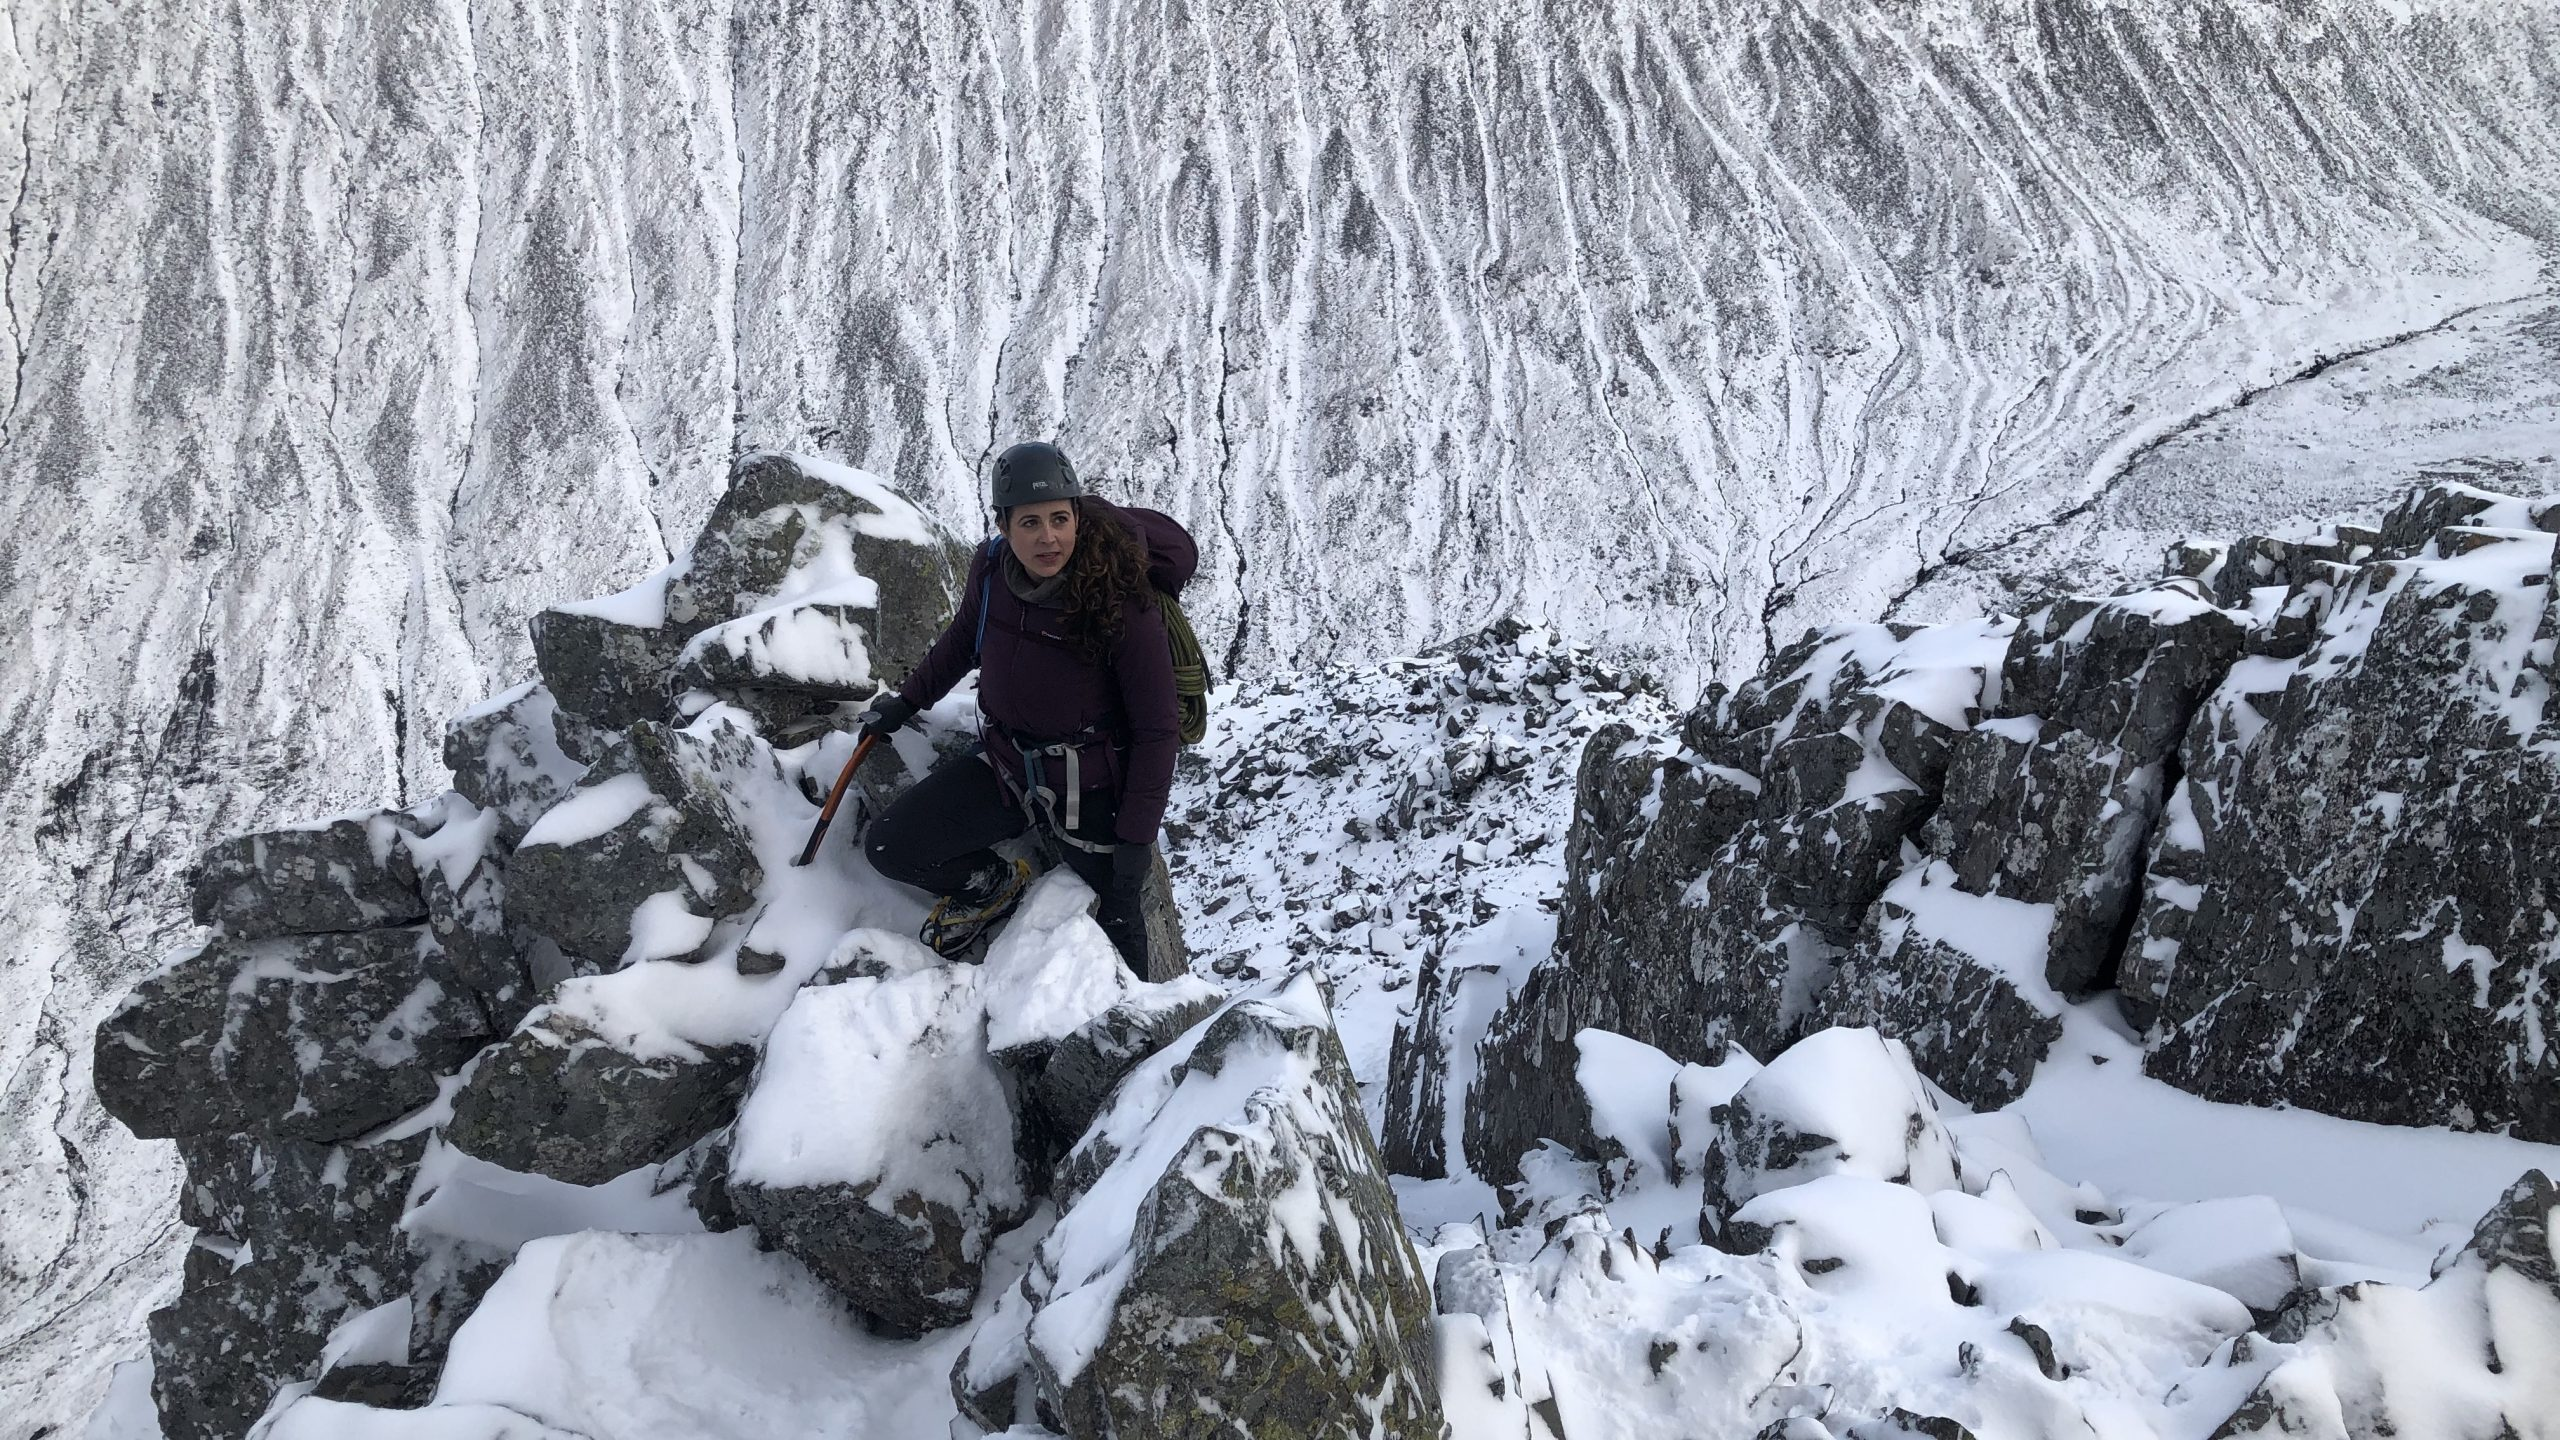 Looking down Ledge Route high up on Ben Nevis during a winter mountaineering courses in Scotland